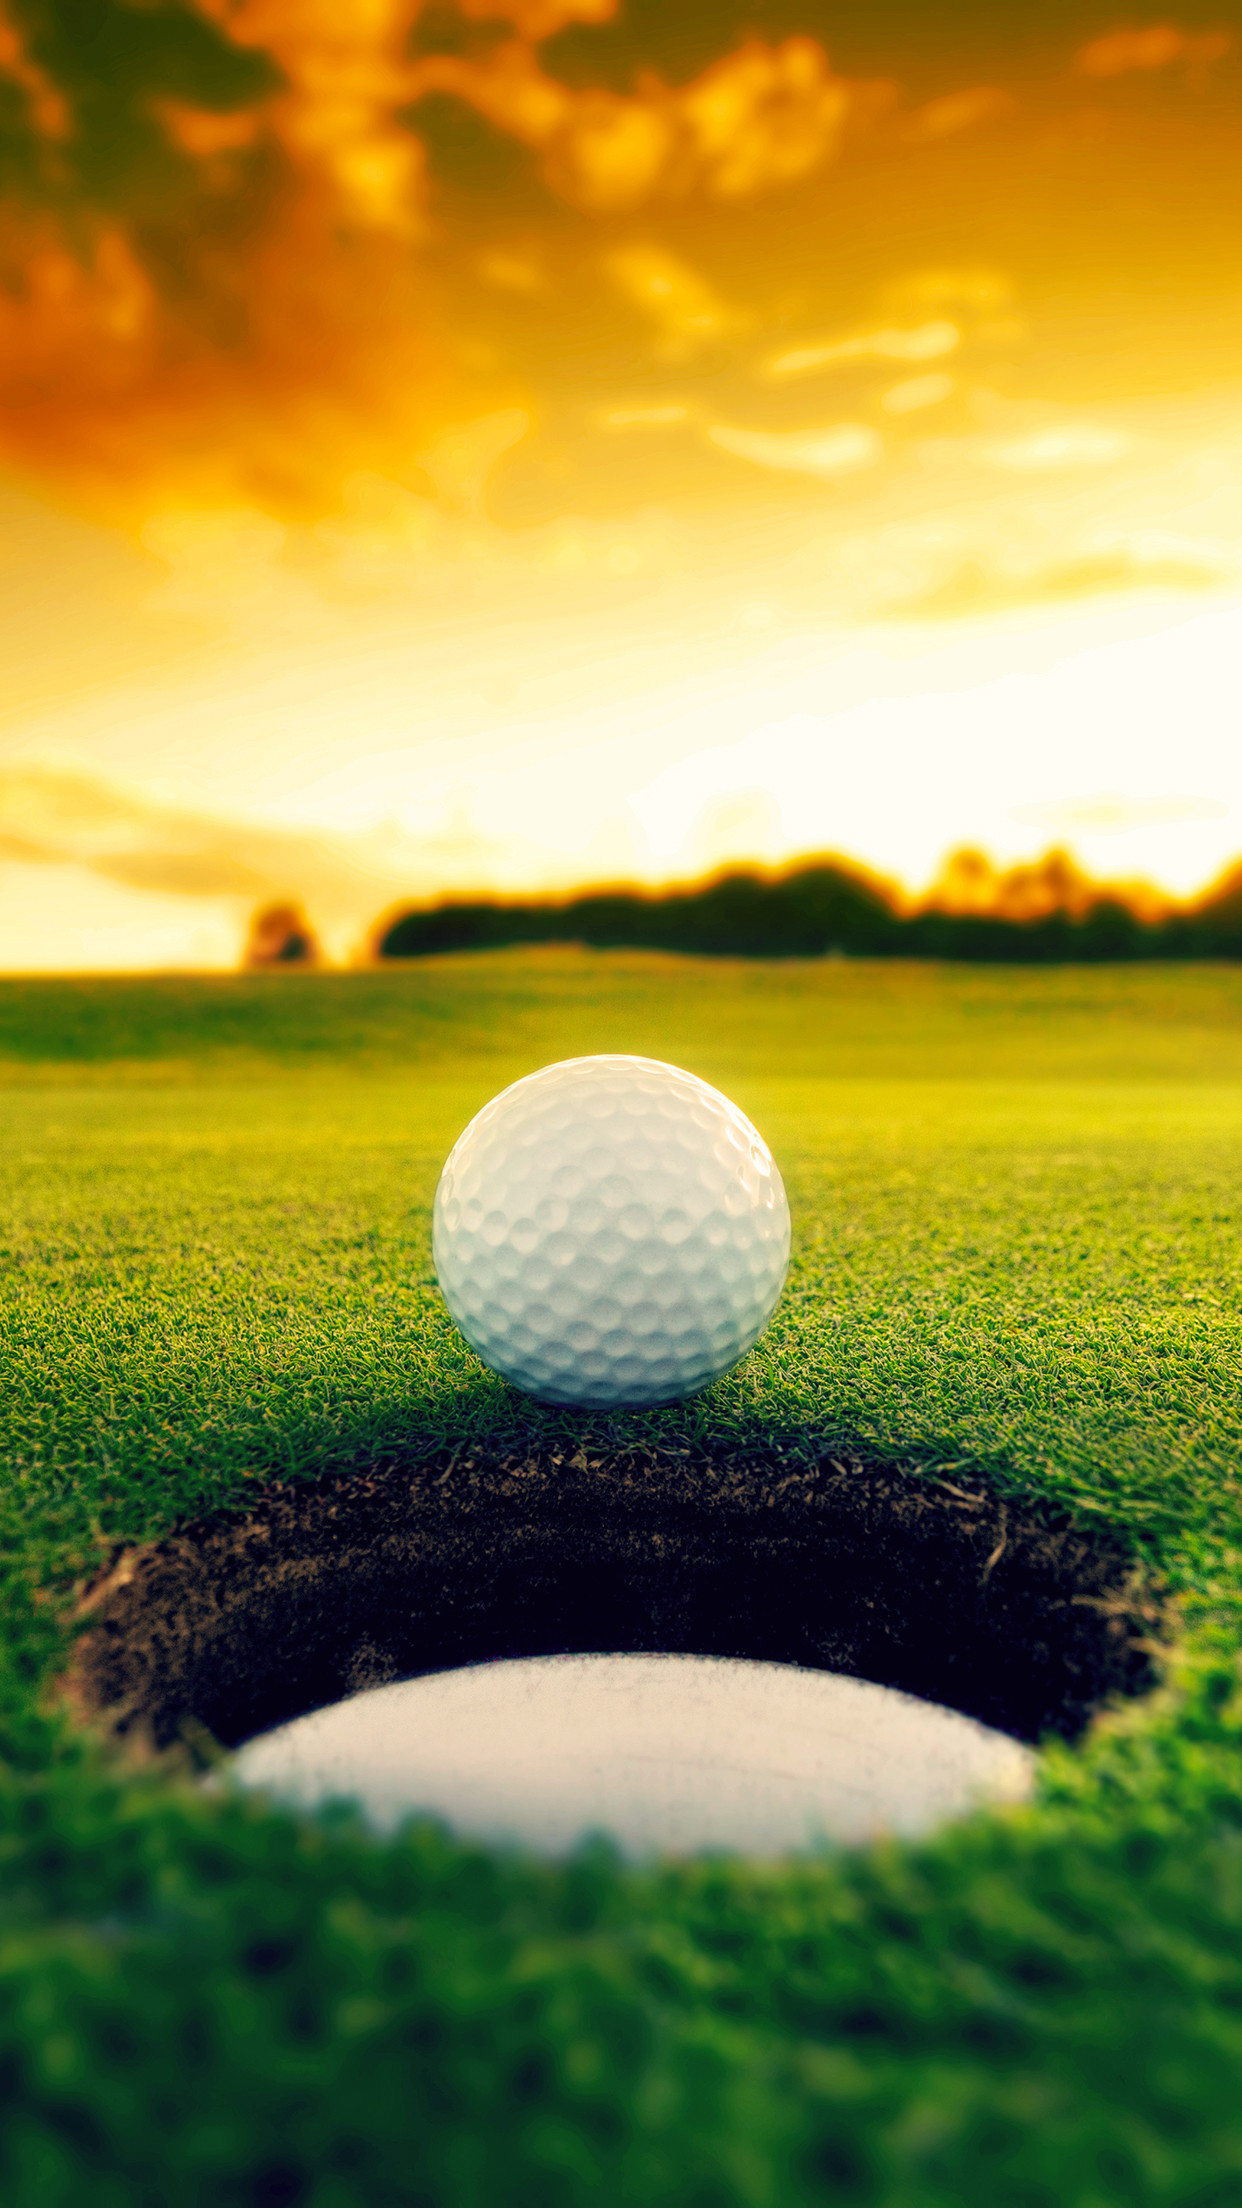 Nike Golf Iphone Wallpaper 64 Images